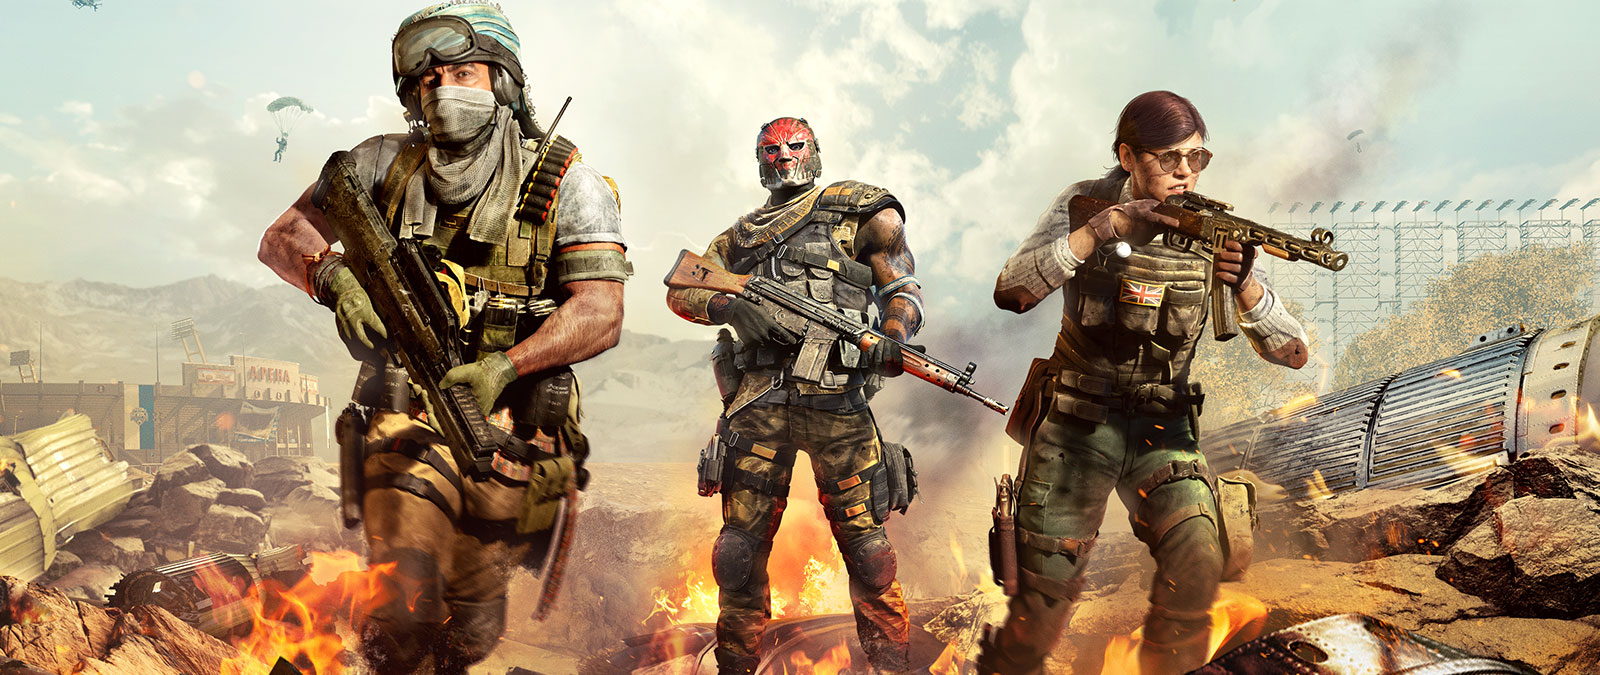 Three characters holding guns in a war zone.